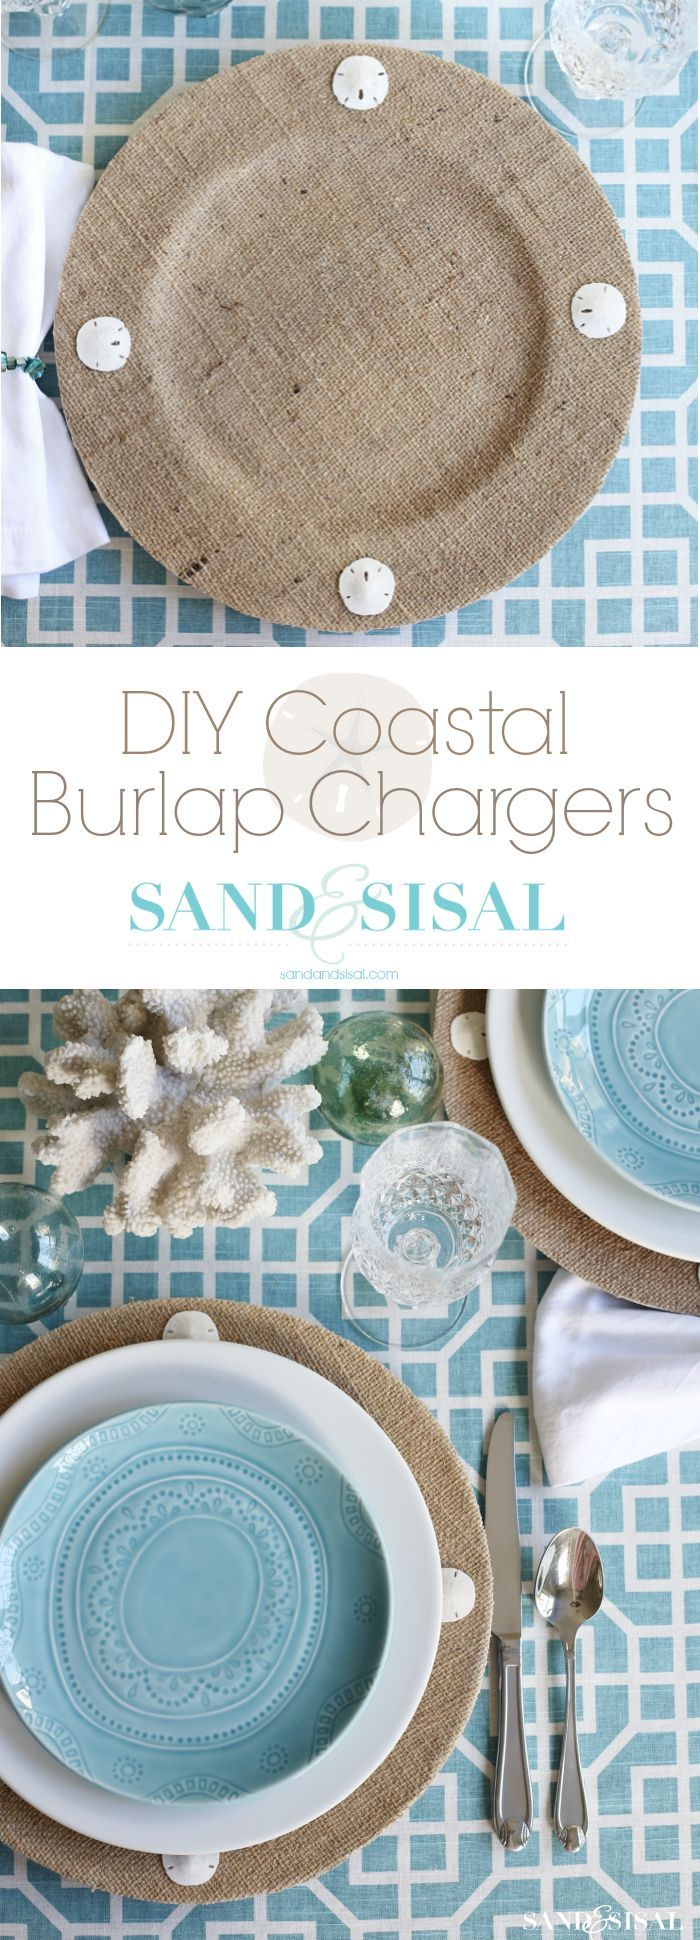 DIY Coastal Burlap Chargers - transform boring old plastic plate chargers with this simple tutorial Click through pic for tutorial. http://sandandsisal.com